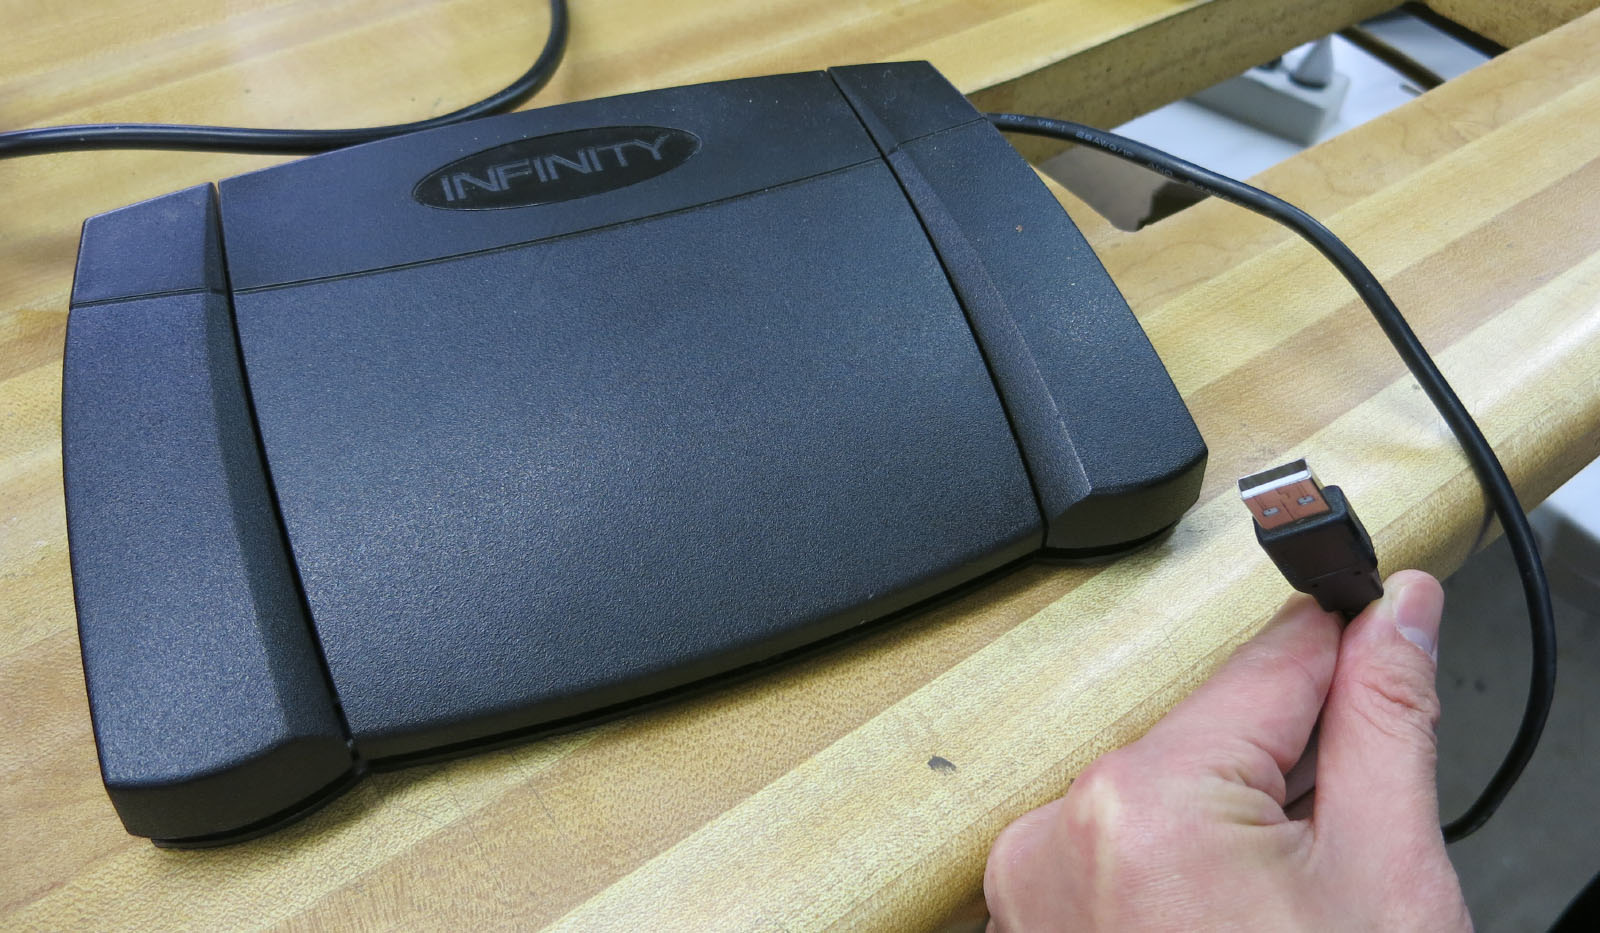 Infinity Foot Pedal IN-USB-2